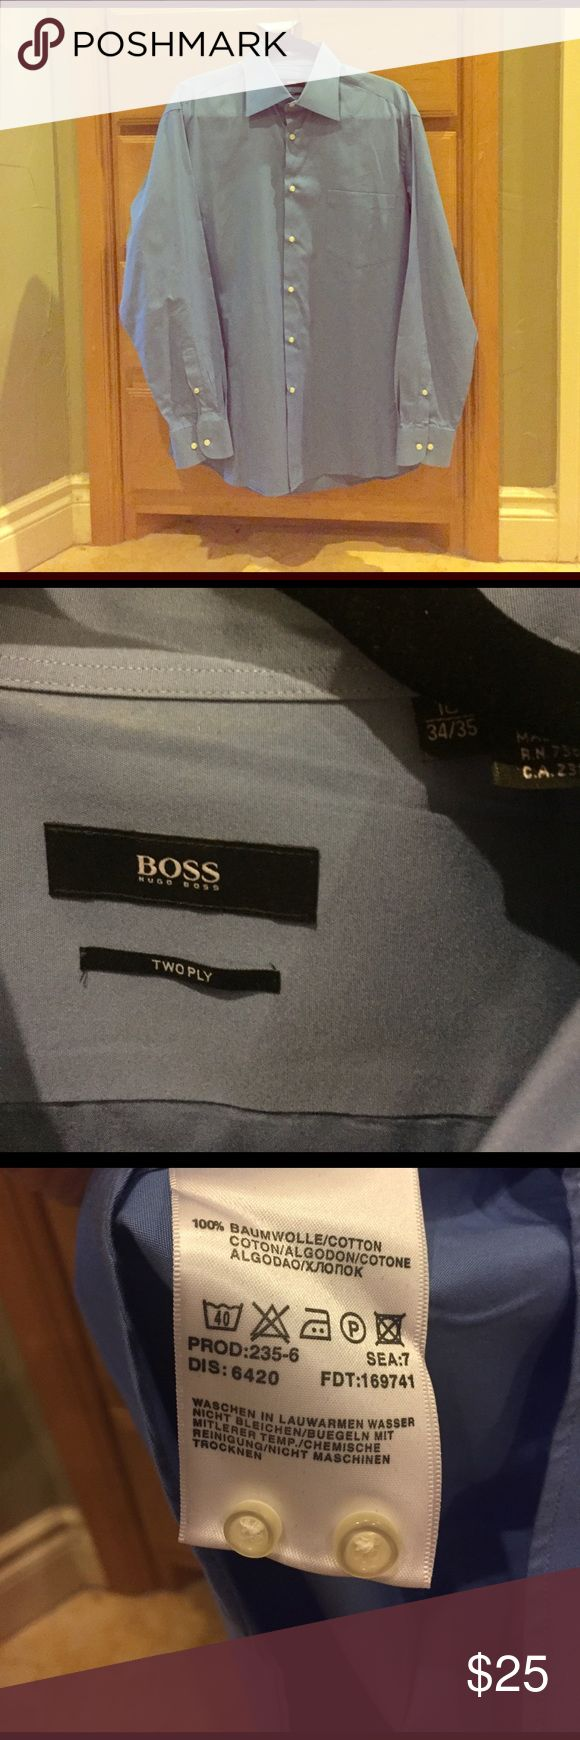 Hugo Boss Blue Dress Shirt - Size 16 34/35 Hugo Boss Dress Shirt - Size 16 34/35 Shirt is blue. 100% cotton. Machine washable. Gently used. Comes with two extra buttons. Hugo Boss Shirts Dress Shirts